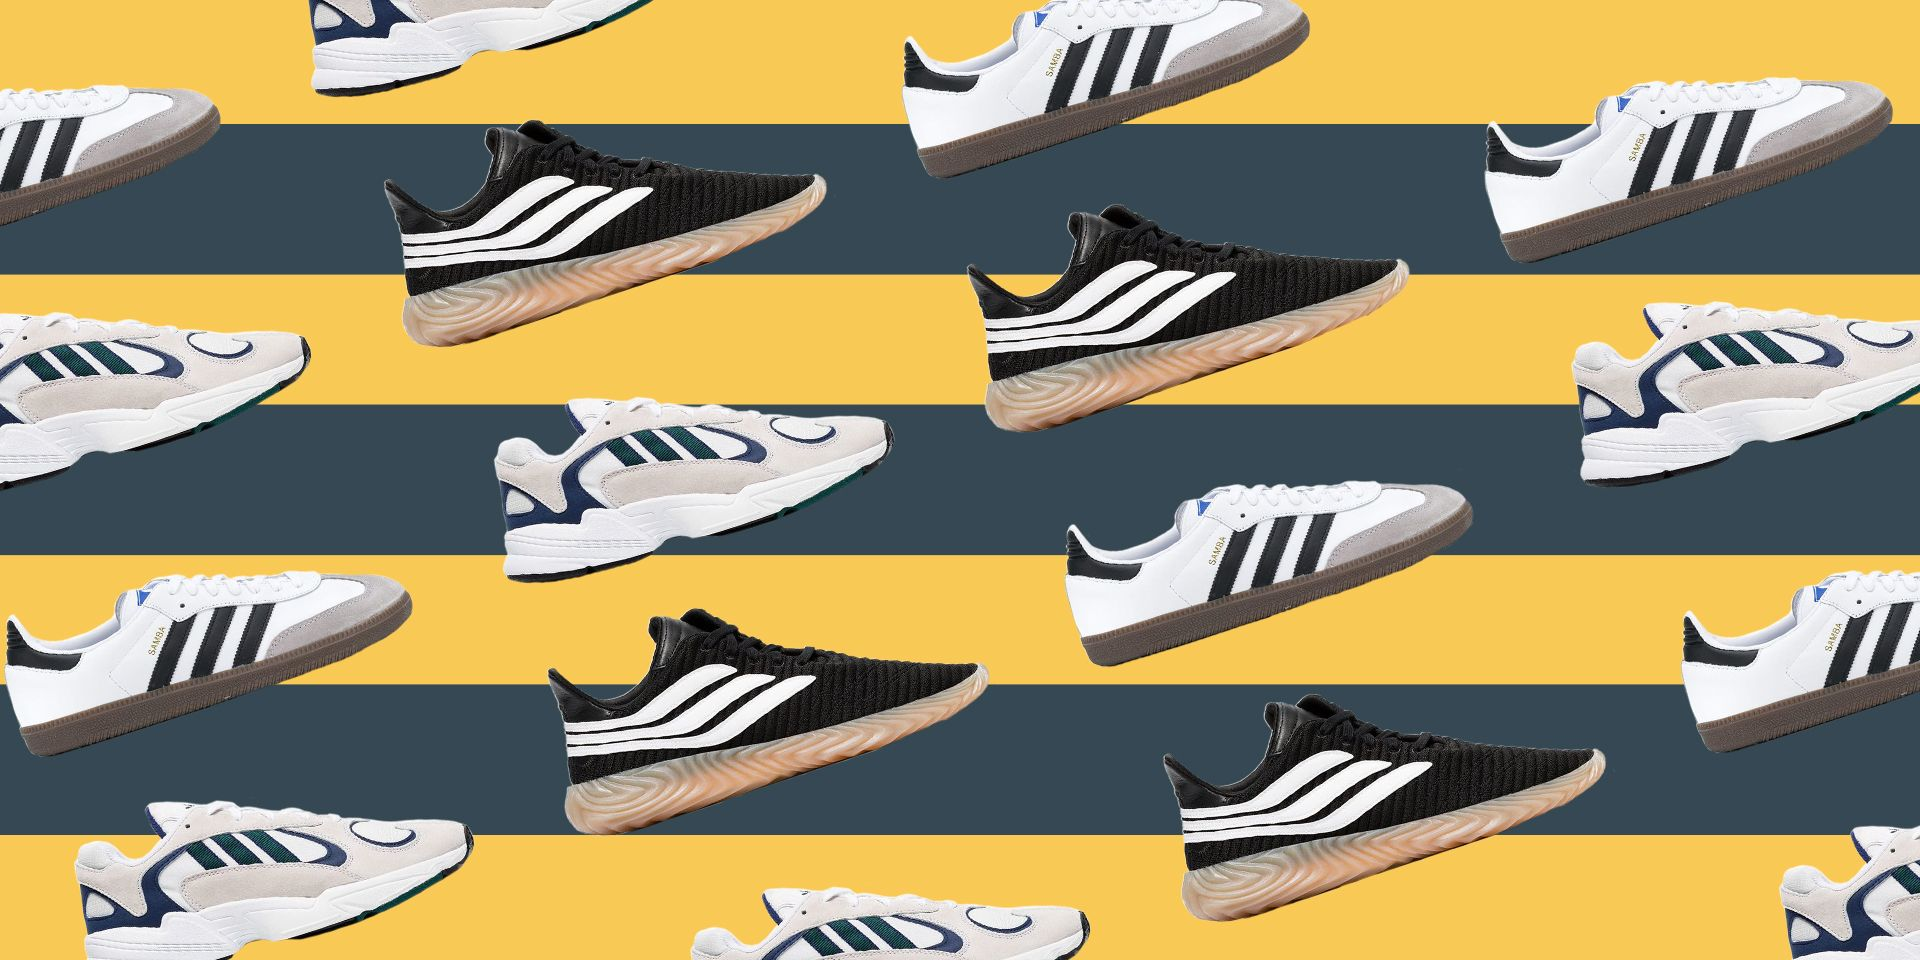 c0f1d7cf8c2635 The Best Adidas Sneakers - Classic Adidas Shoes on Sale Right Now